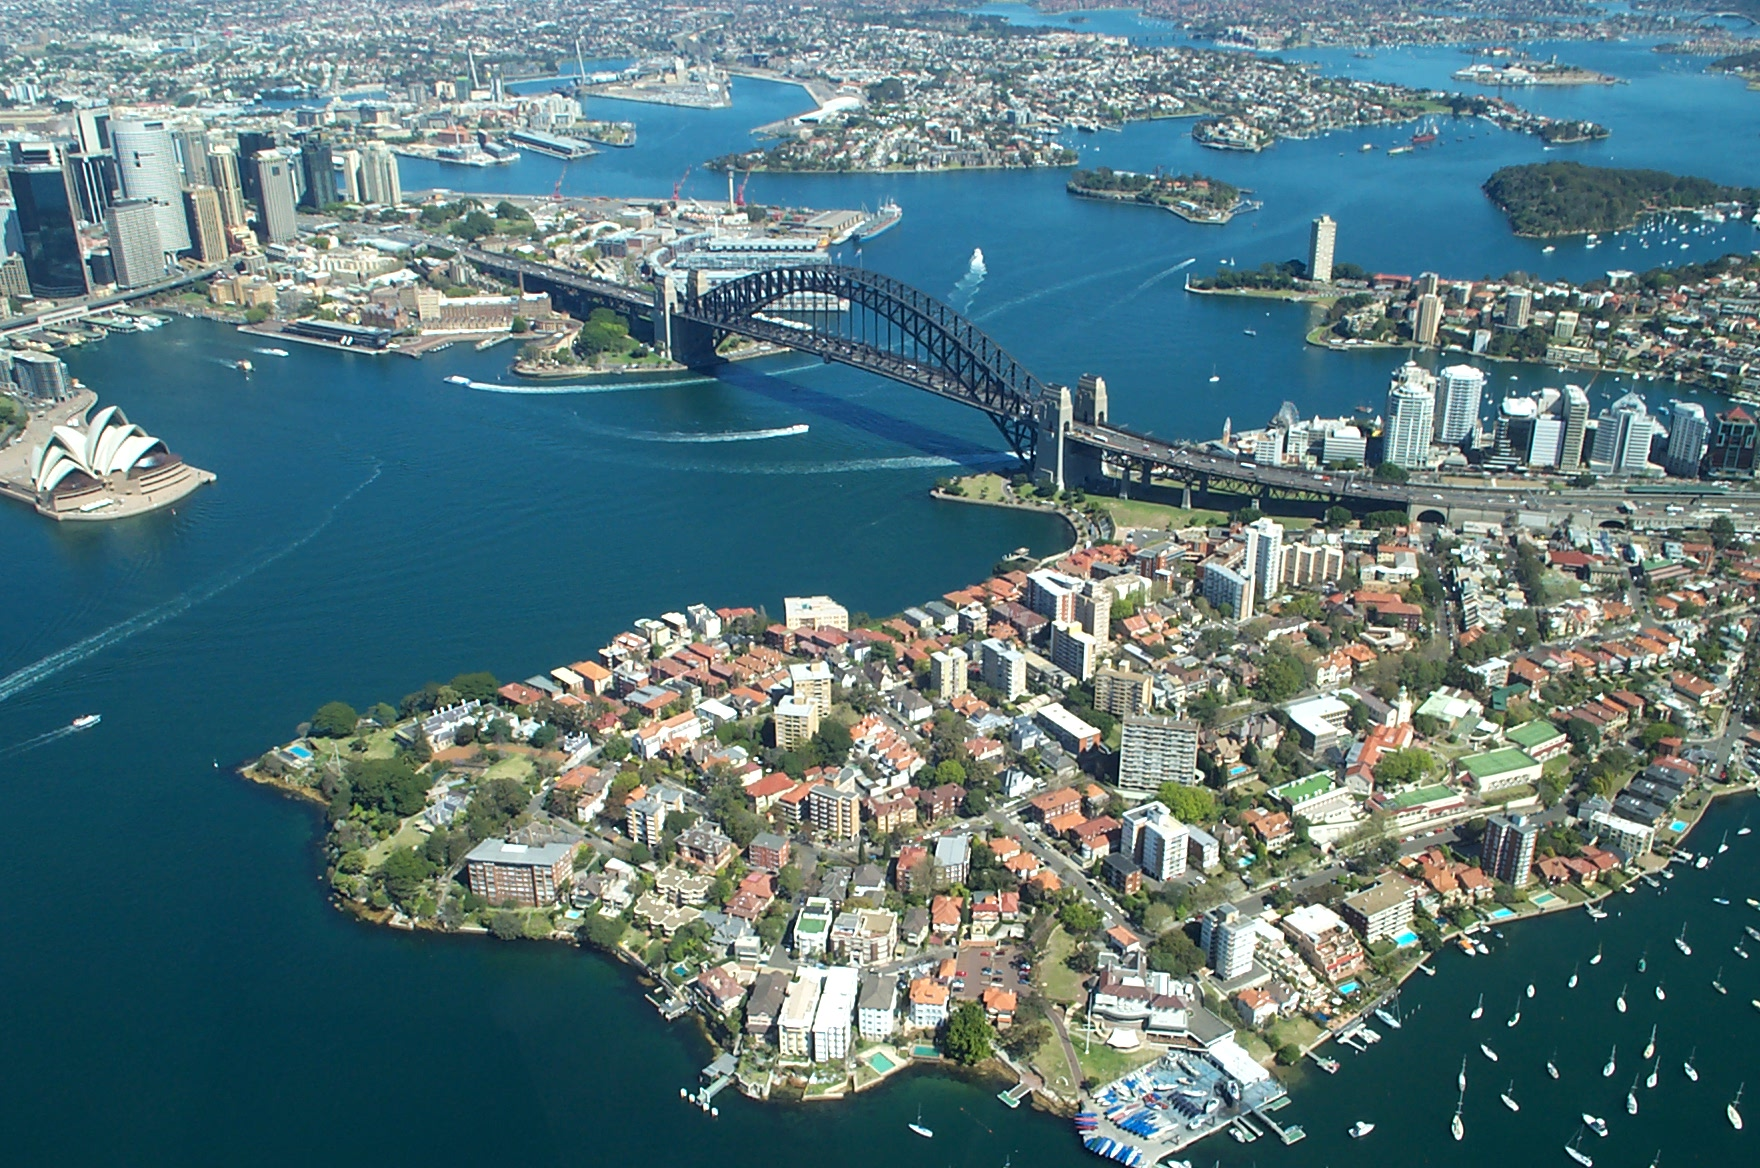 Sydney Harbour Bridge aerial view